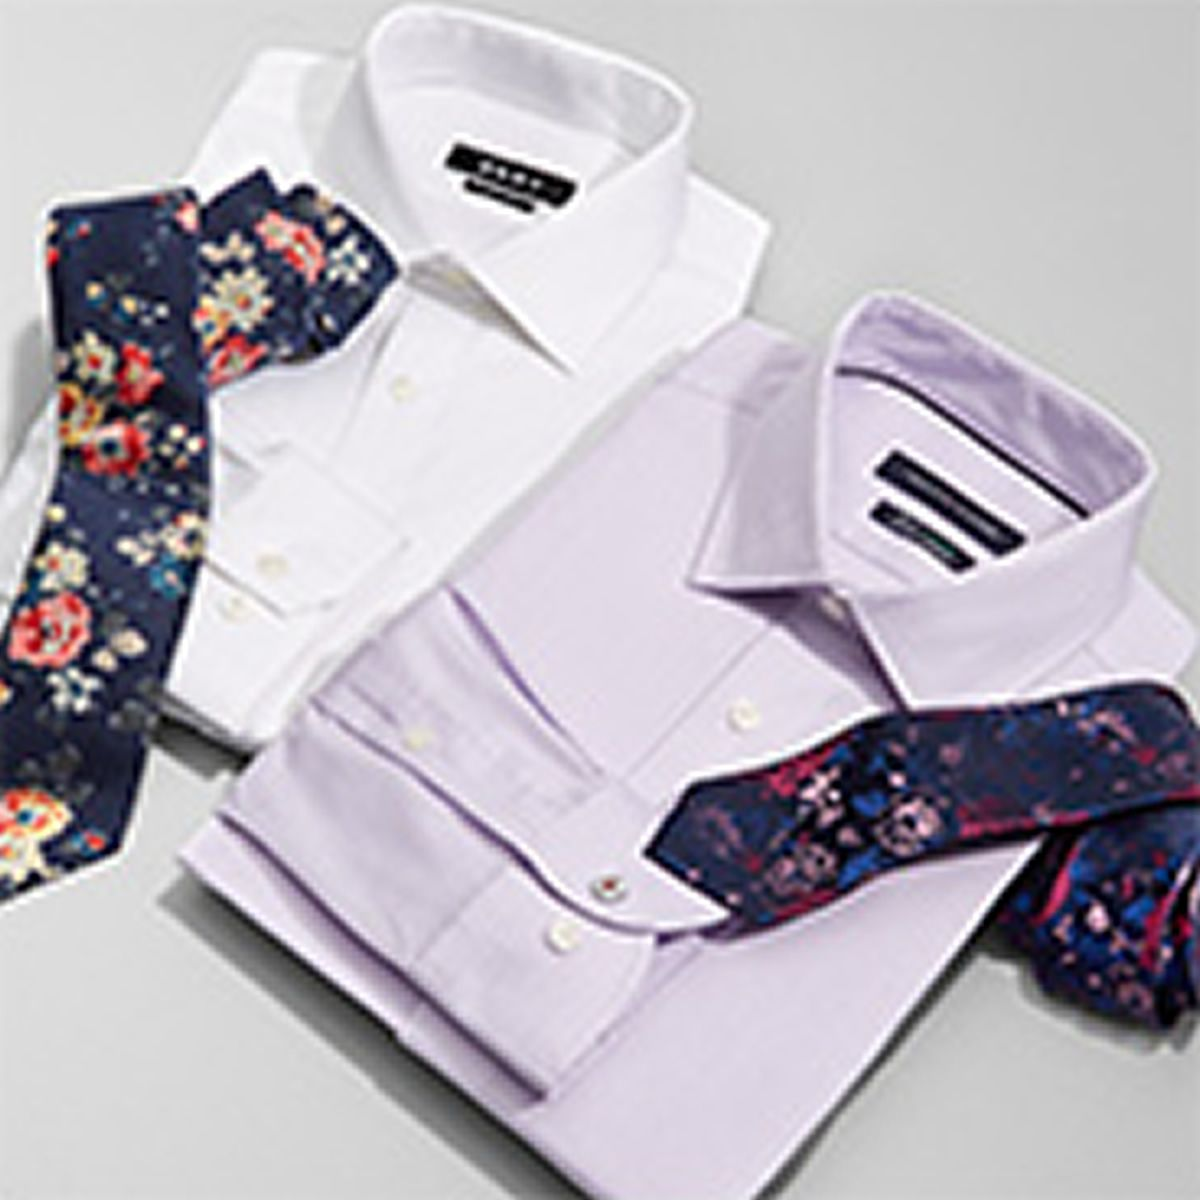 Dress Shirts and Ties